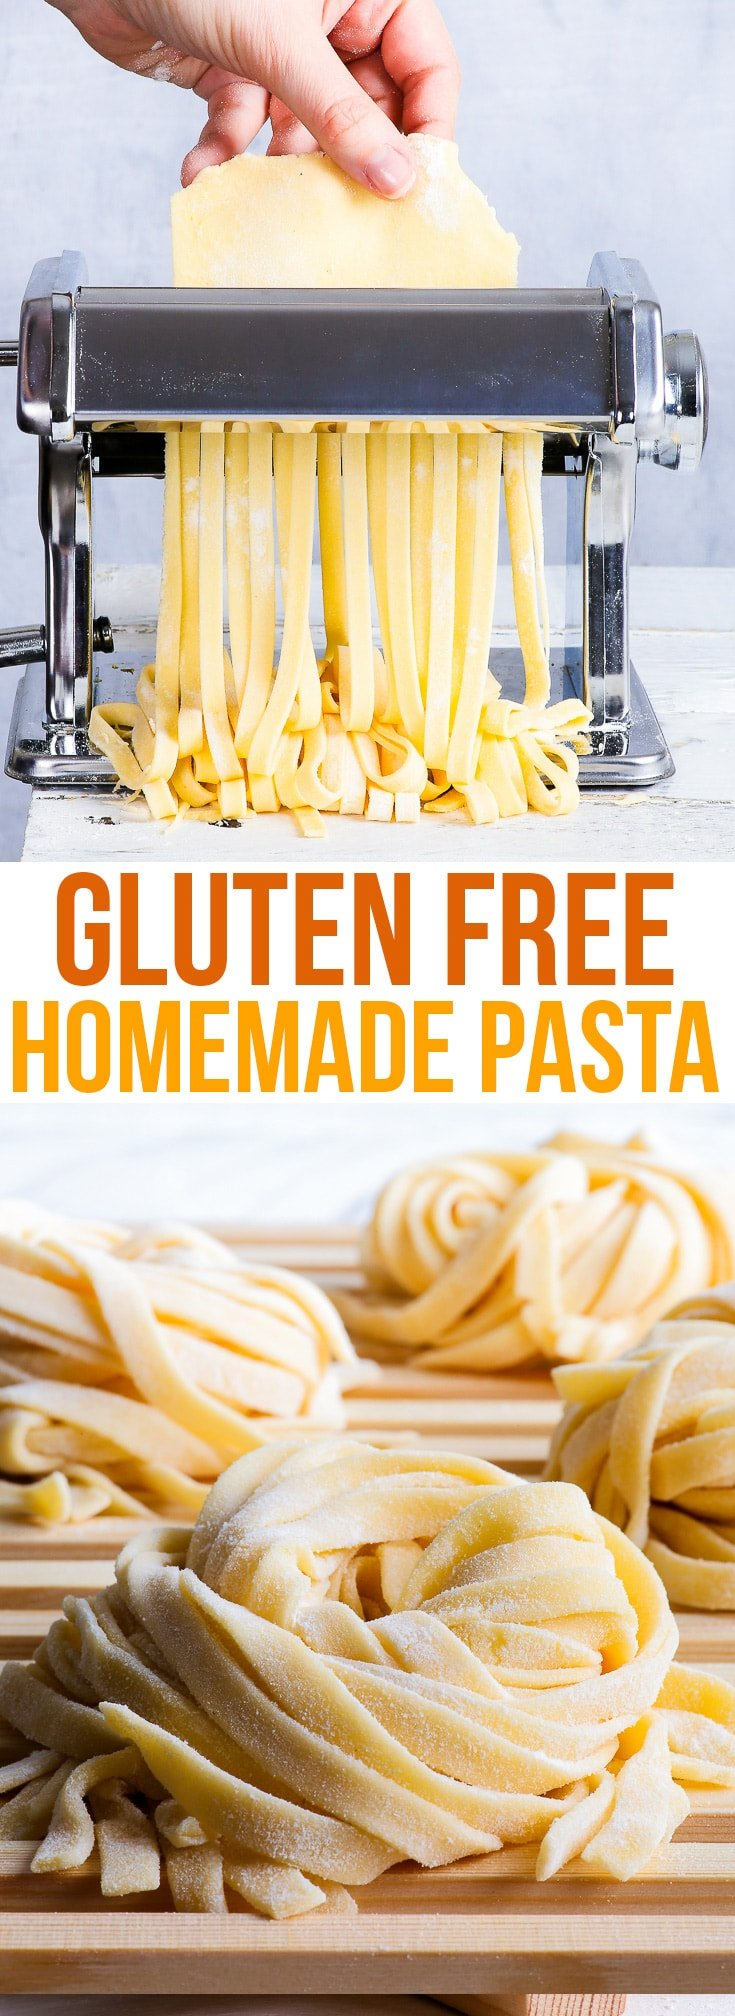 3-Ingredient Homemade Gluten Free Pasta {gluten, dairy, nut, soy & refined sugar free} - A simple and reliable 3-ingredient homemade gluten free pasta recipe. Once you've tasted this gluten free pasta from scratch, you'll never go back to the store-bought stuff. The perfect thing to have on hand for a quick gluten free lunch or dinner! #glutenfree #pasta #food #lunch #dinner #recipe